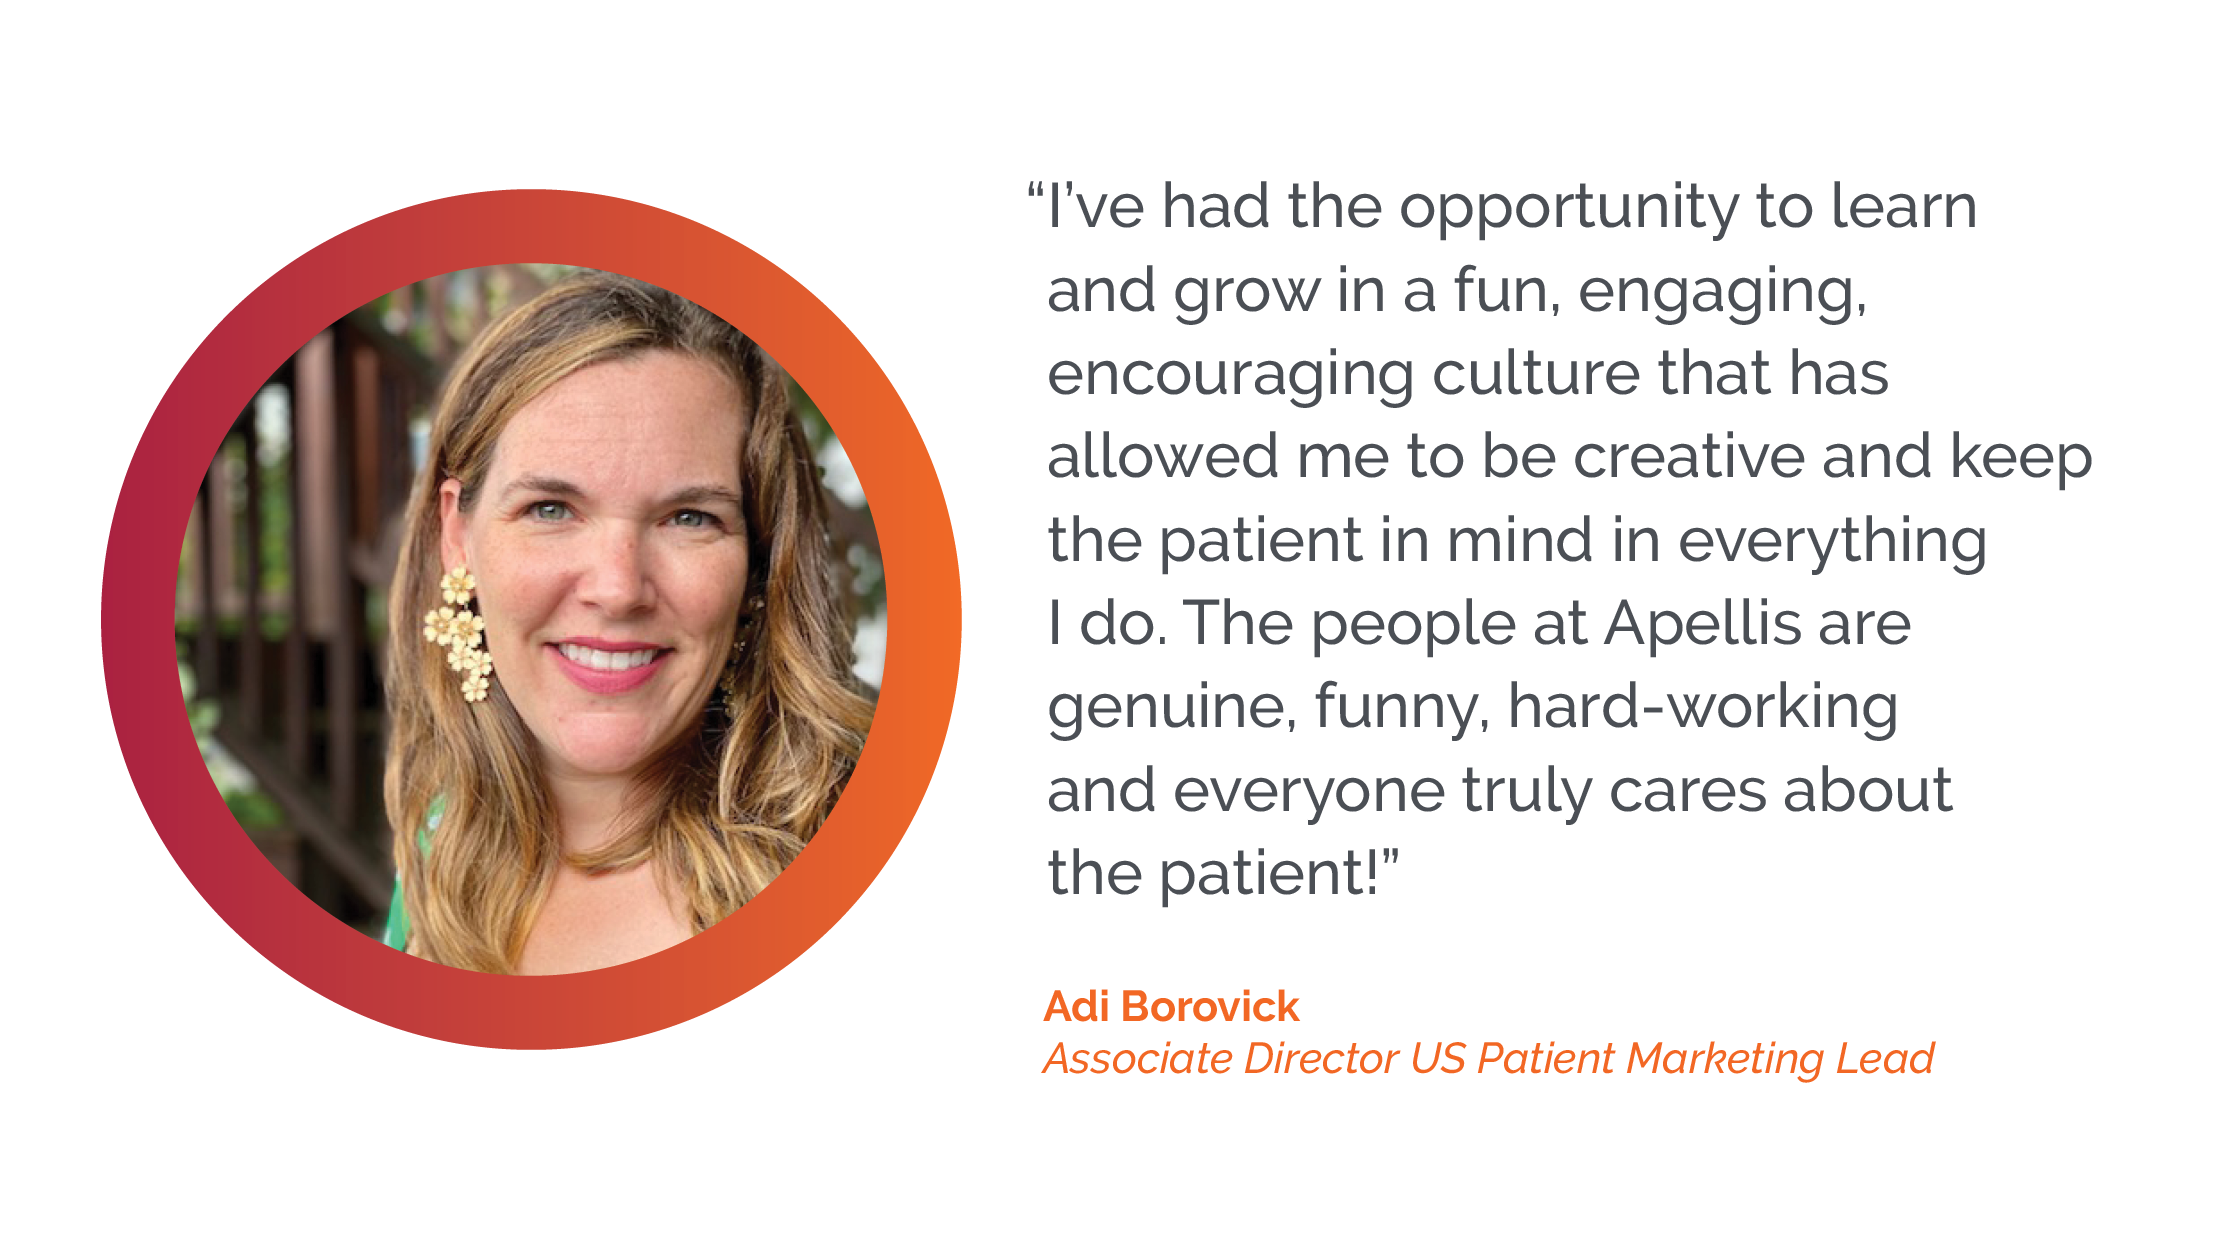 I've had the opportunity to learn and grow - Adi Borovick